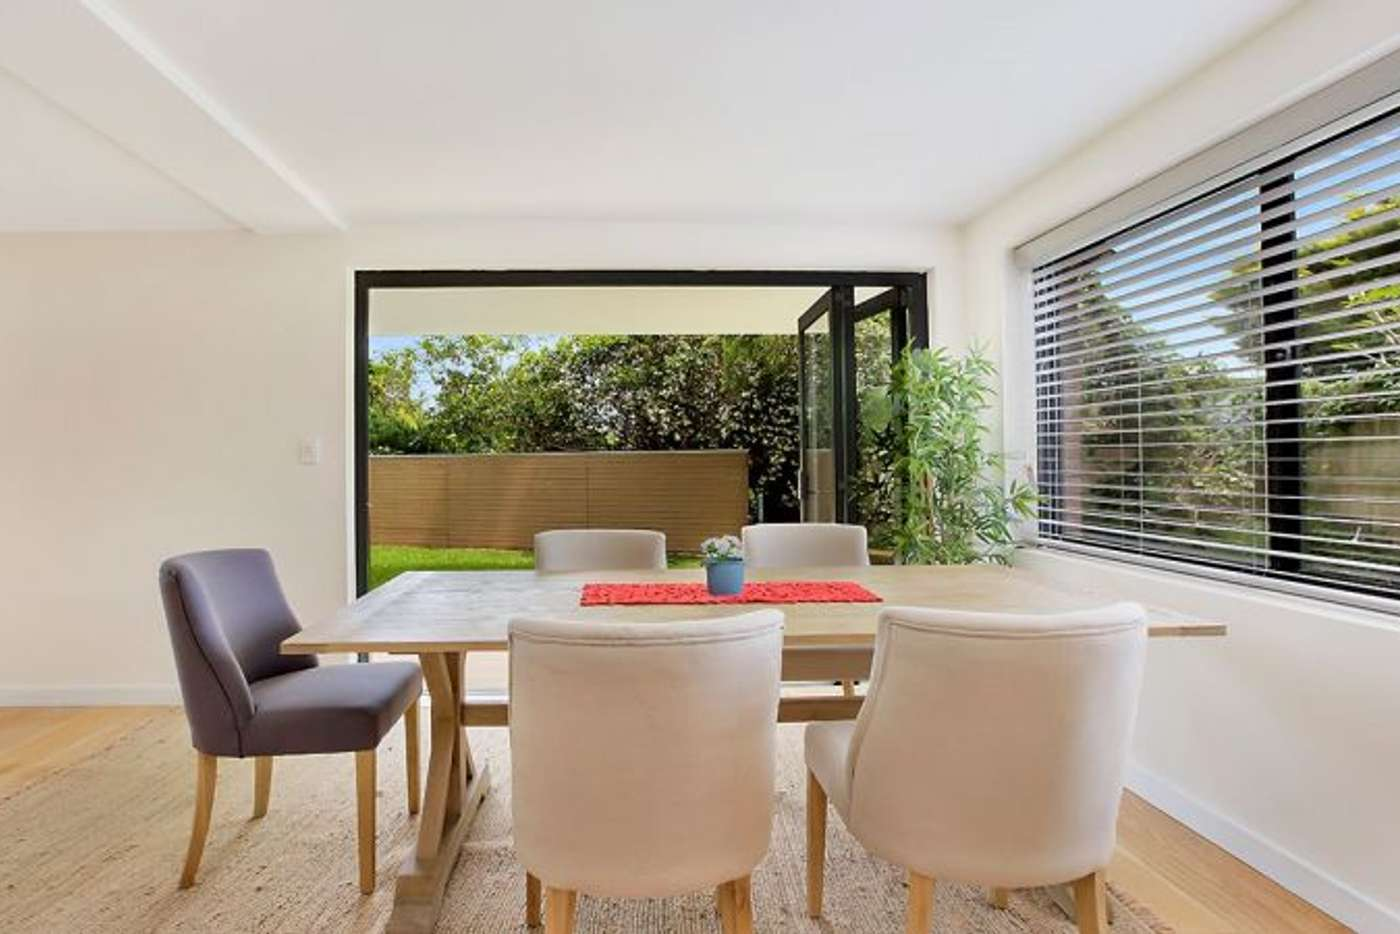 Main view of Homely apartment listing, 1A/16 Derby St, Vaucluse NSW 2030